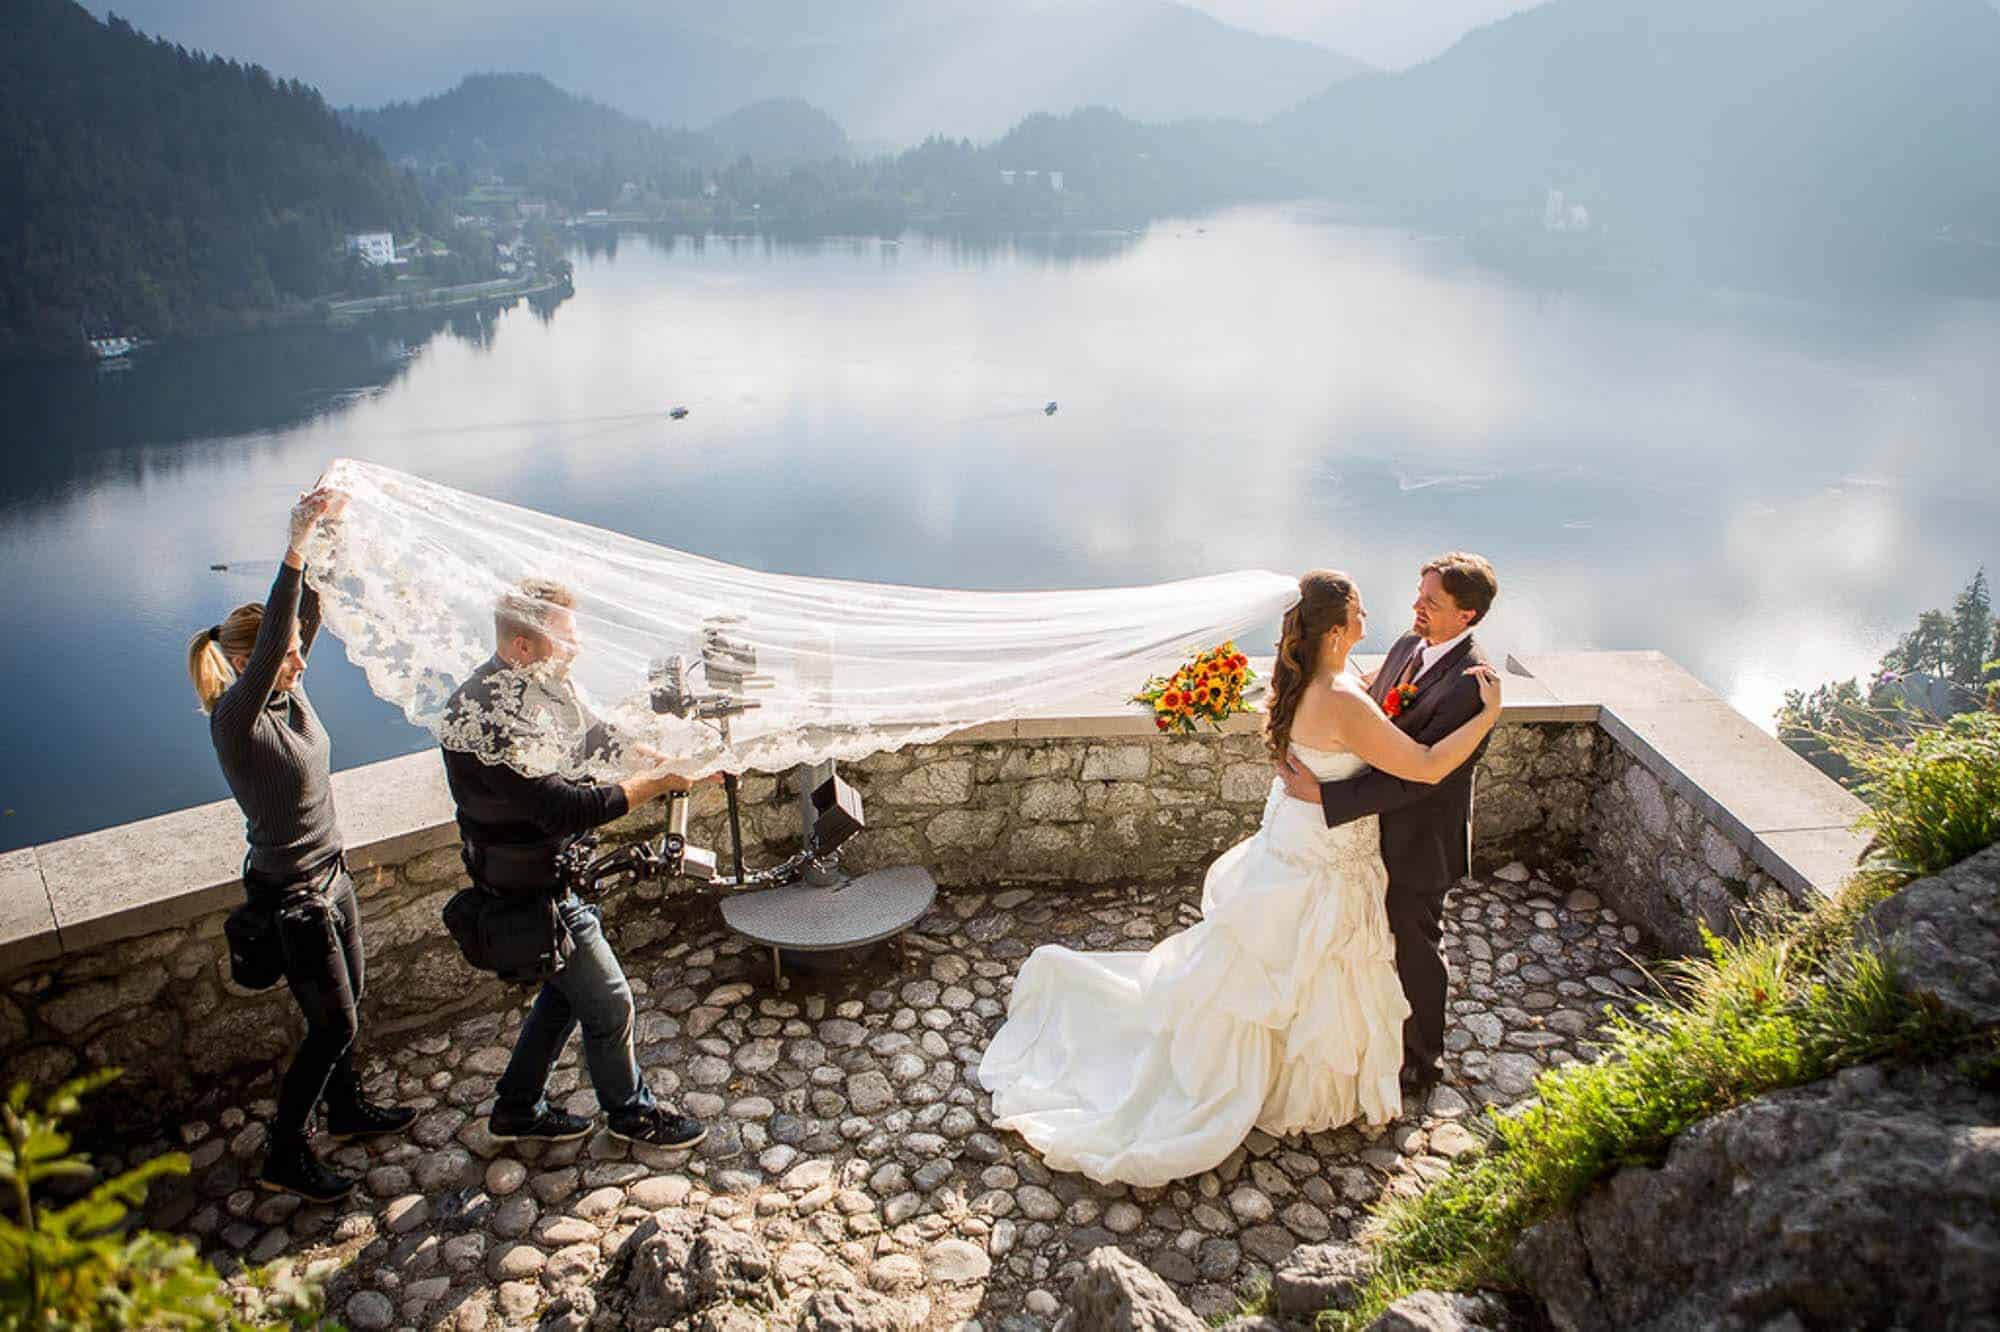 Primavera Bled - Weddings in Slovenia - Videography Service